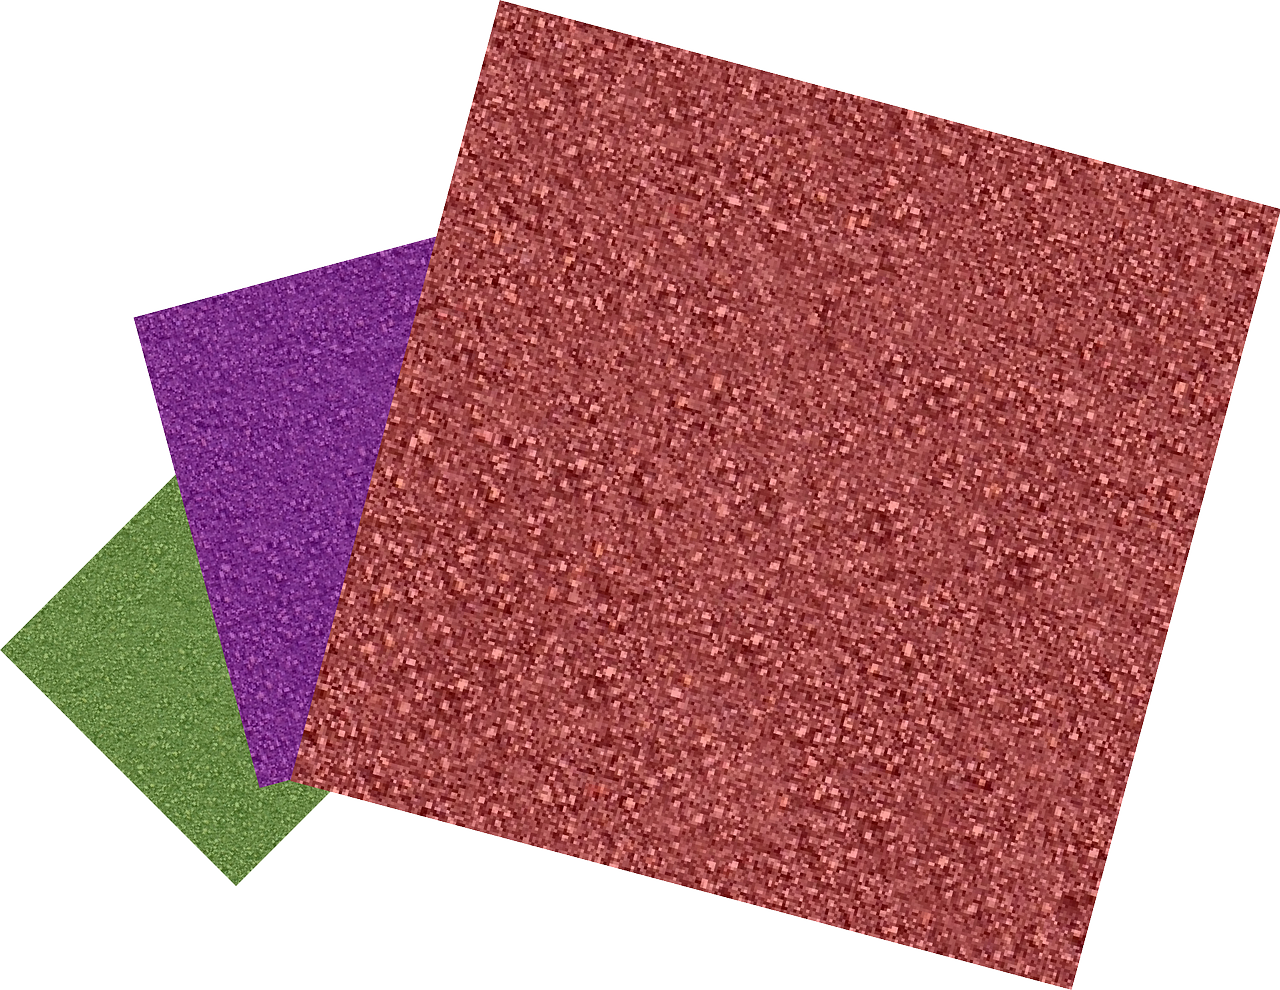 sandpaper in three colors